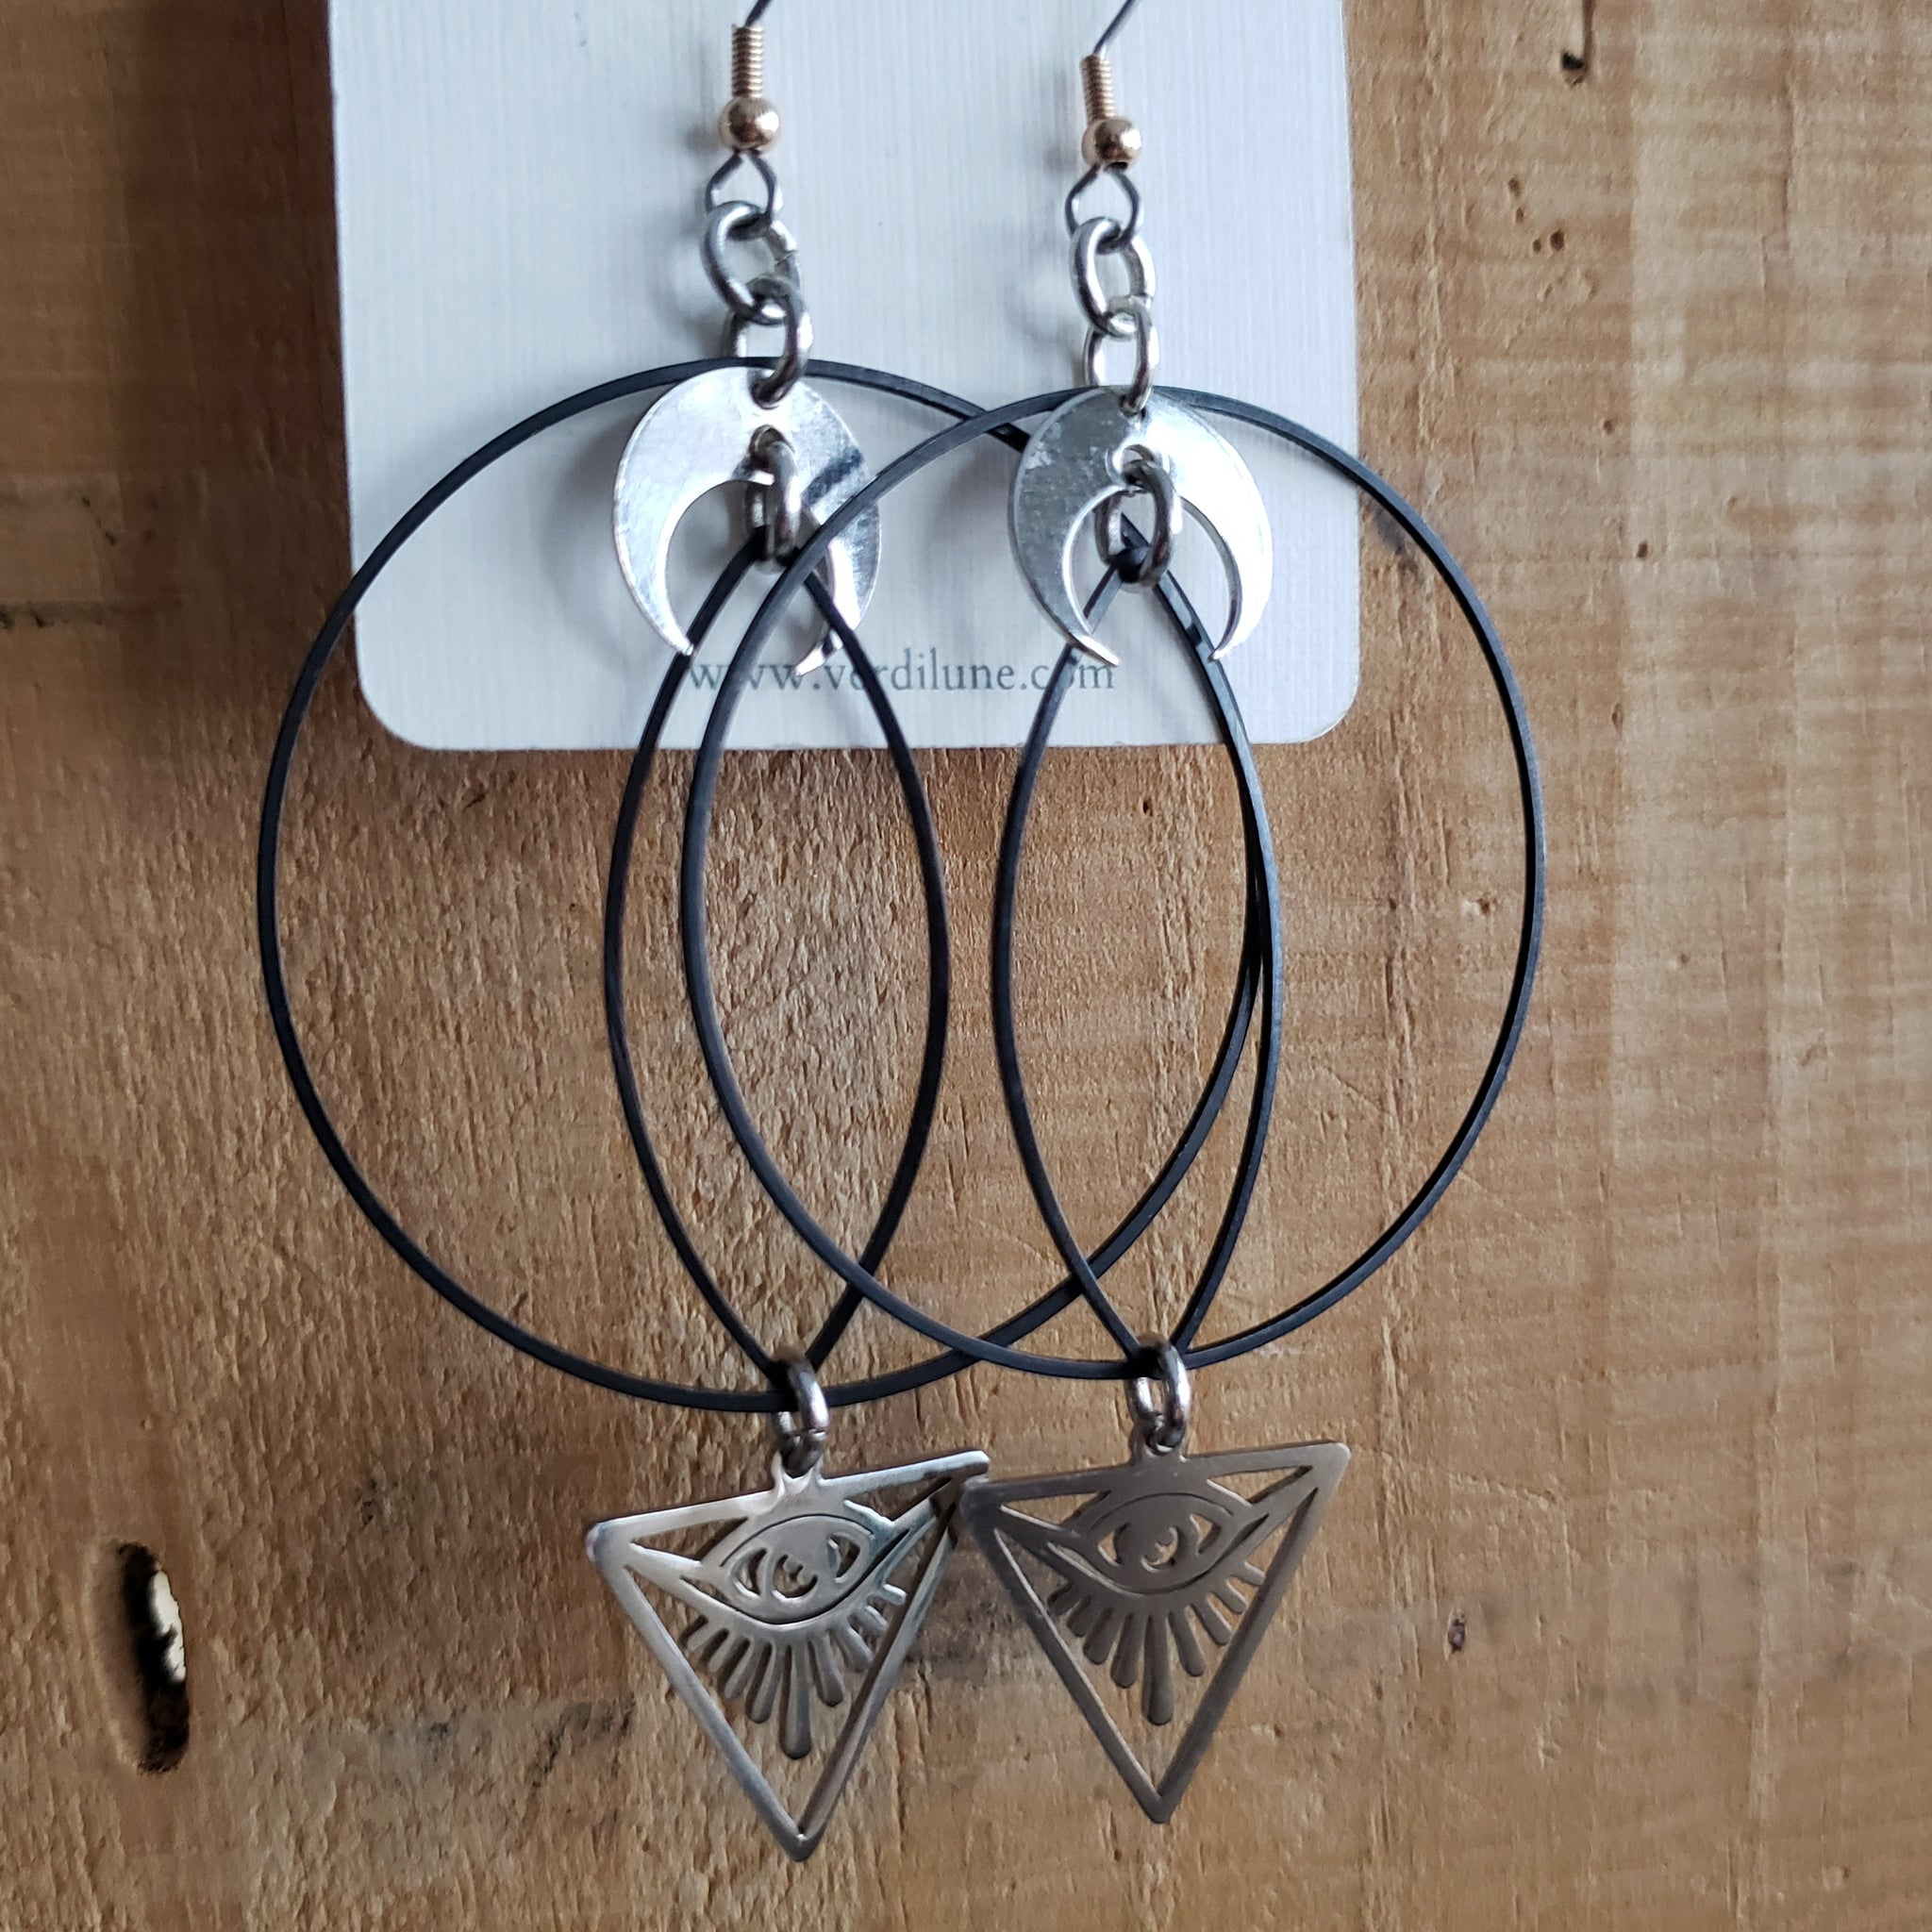 Elemental Metals Collection ◇ Illuminati ◇ Celestially-Inspired Brass Earrings